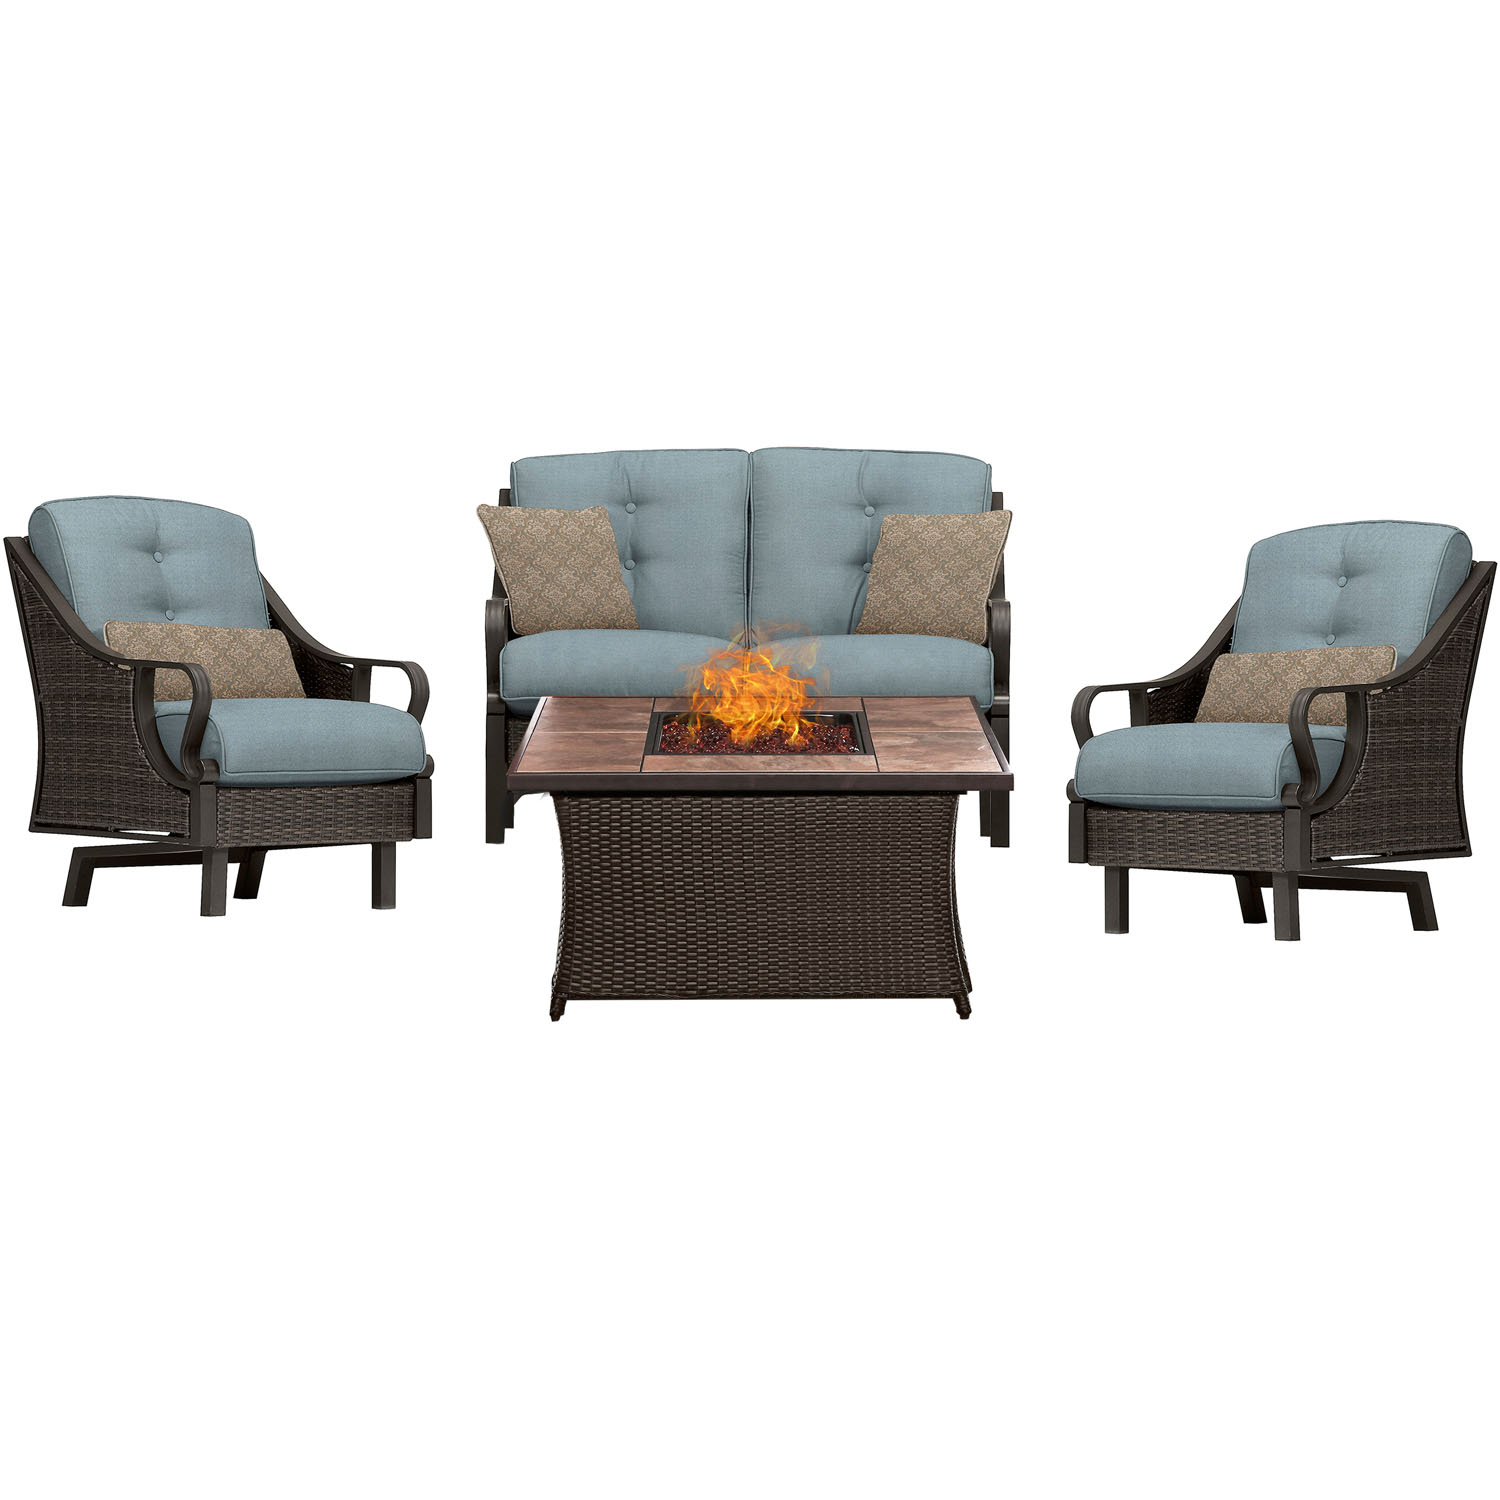 Sofa Mart Idaho Falls Patio Conversation Sets Walmart